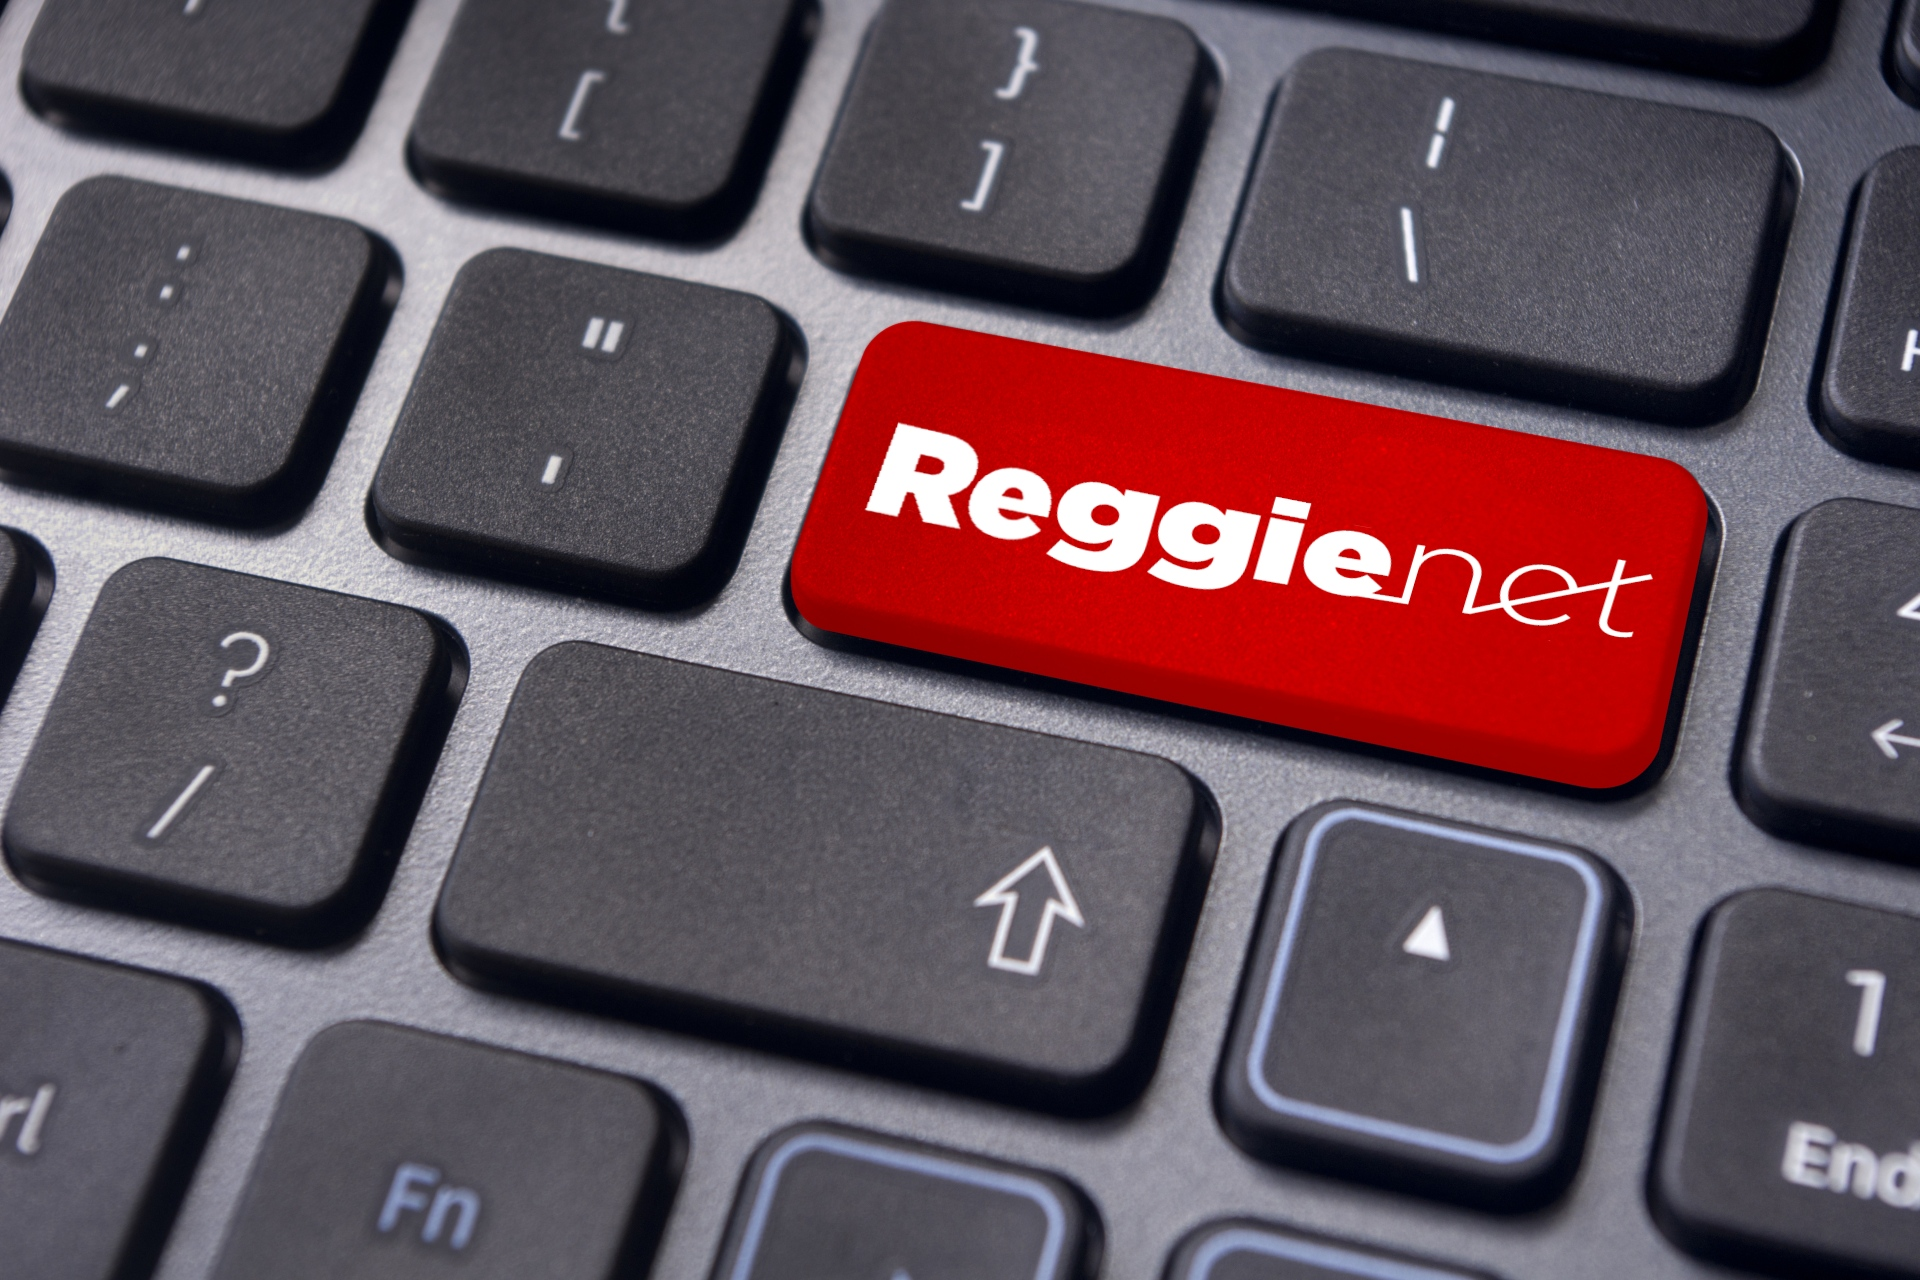 Keyboard with ReggieNet logo